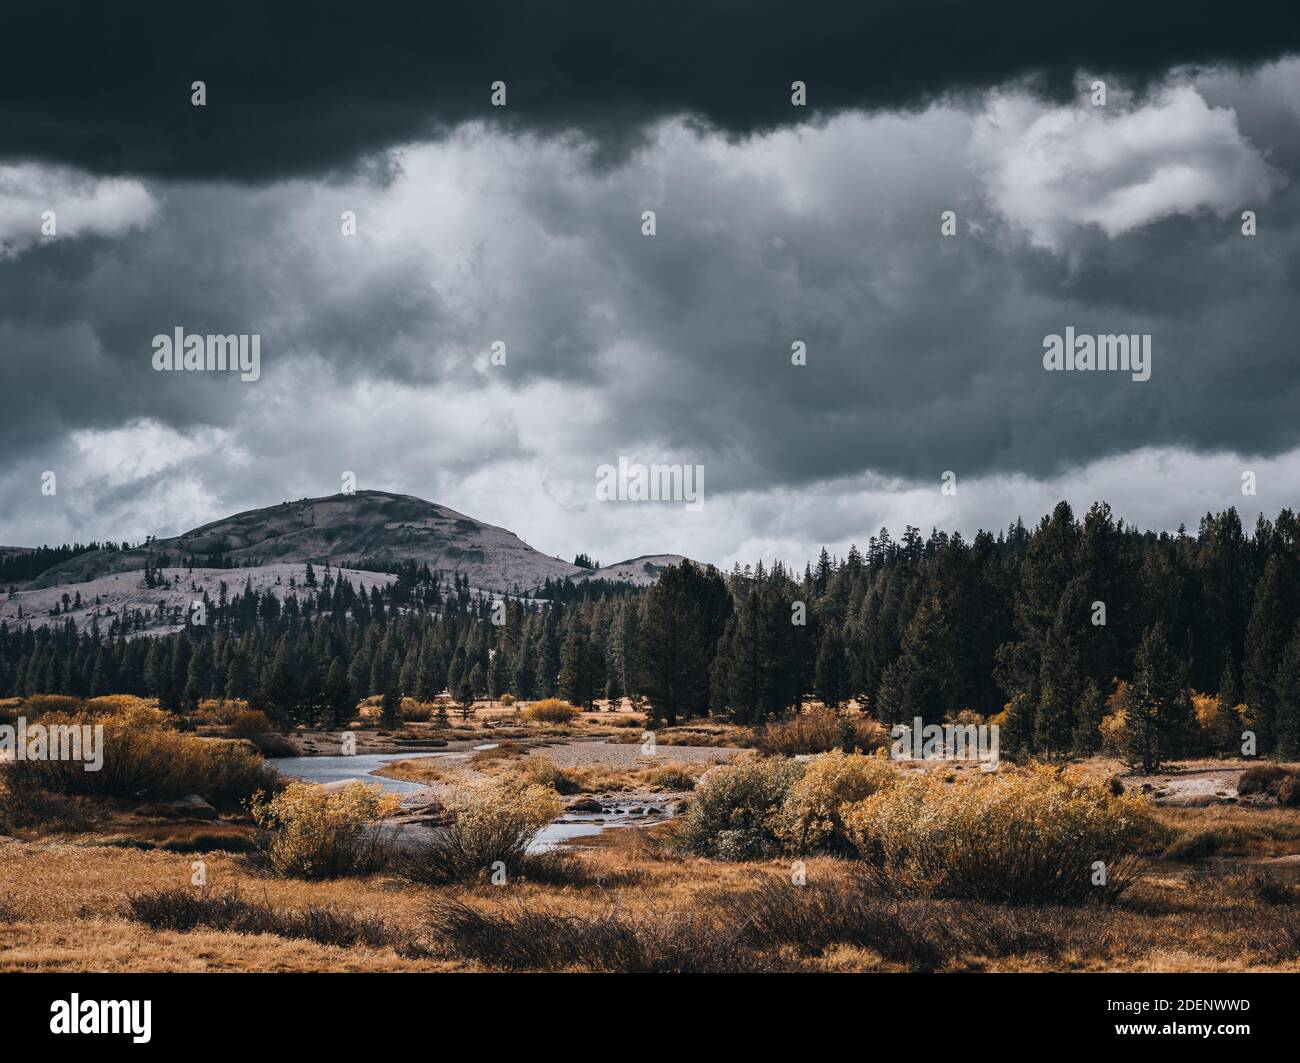 A river, autumn foliage, pine trees and a mountain under dramatic, stormy skies with light shining through the clouds at Tuolumne Meadows in Yosemite Stock Photo